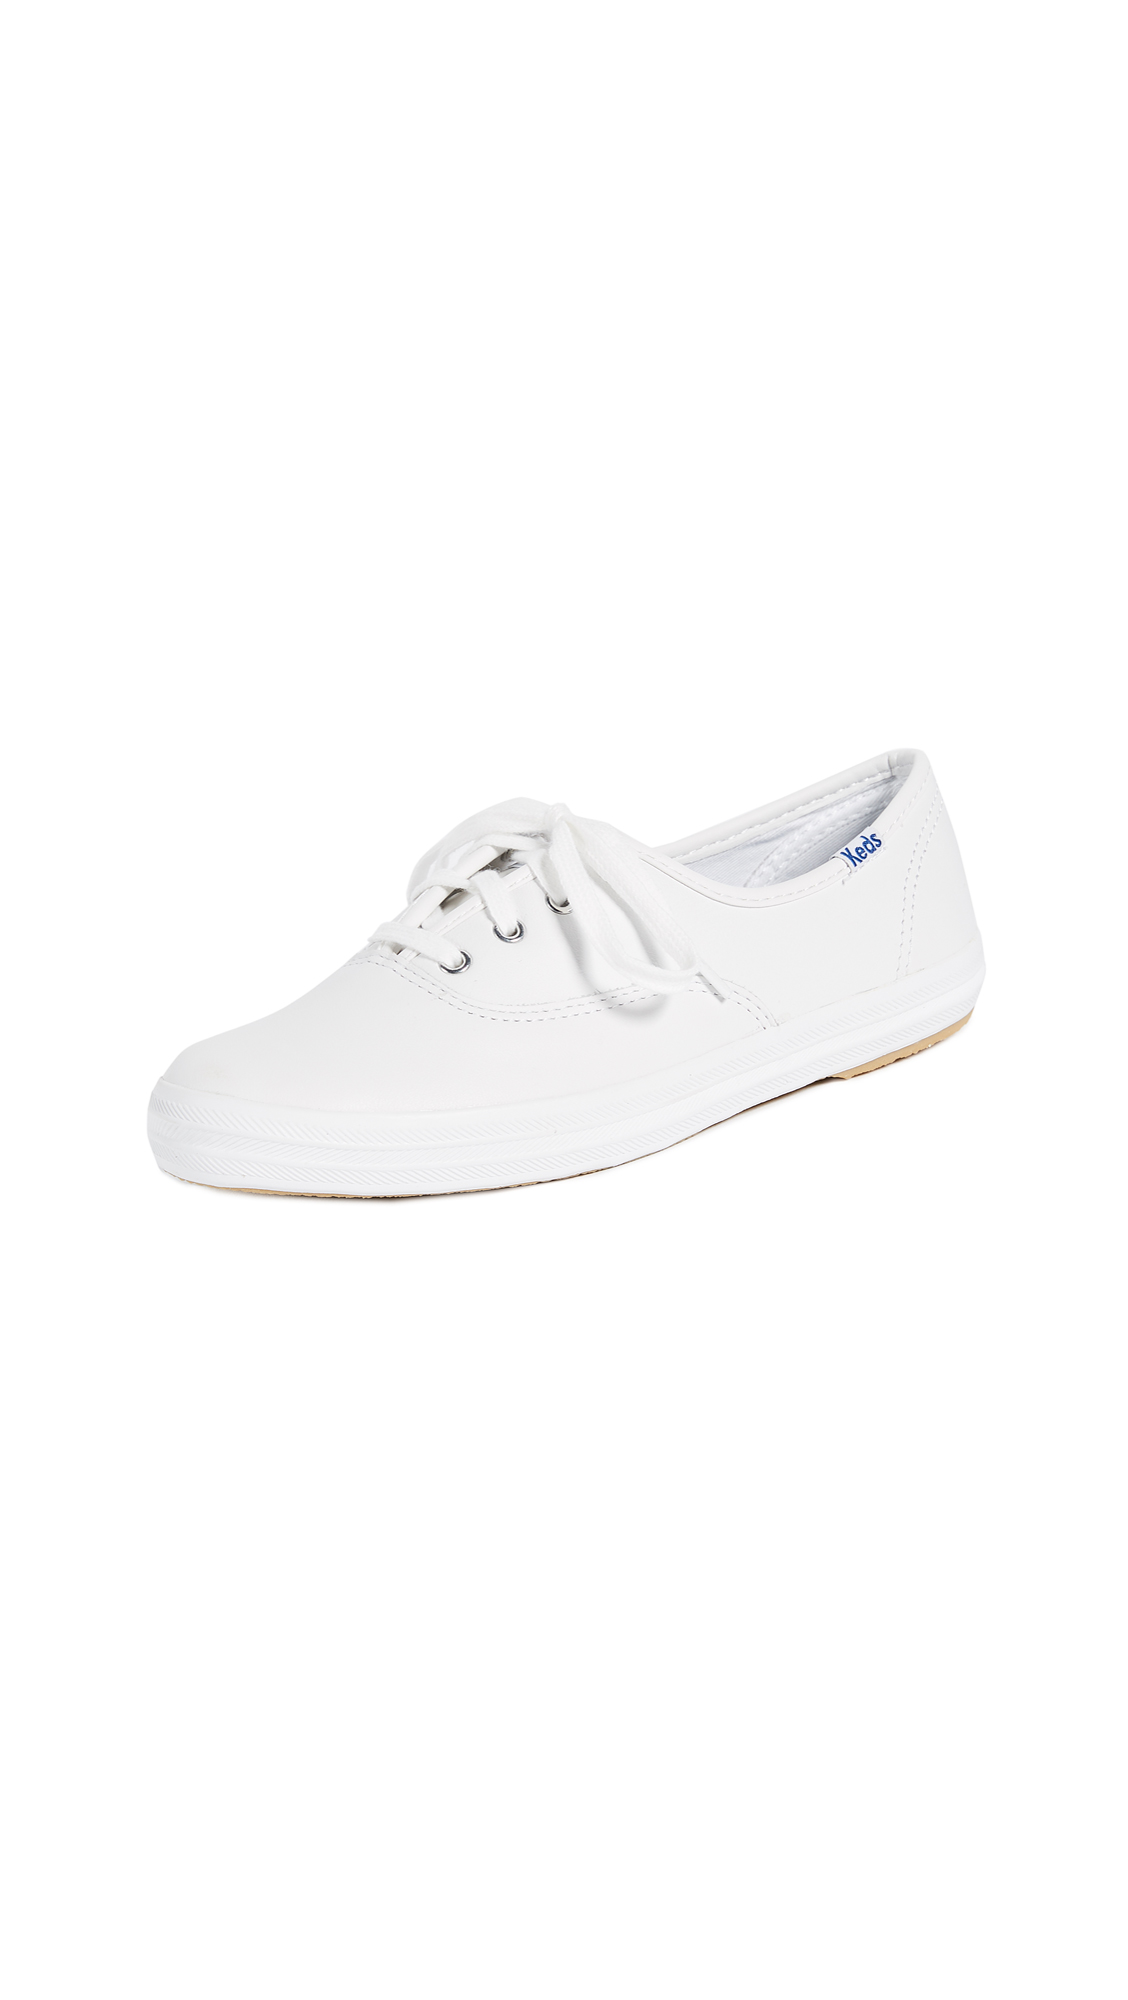 Keds Champion Core Sneakers - White